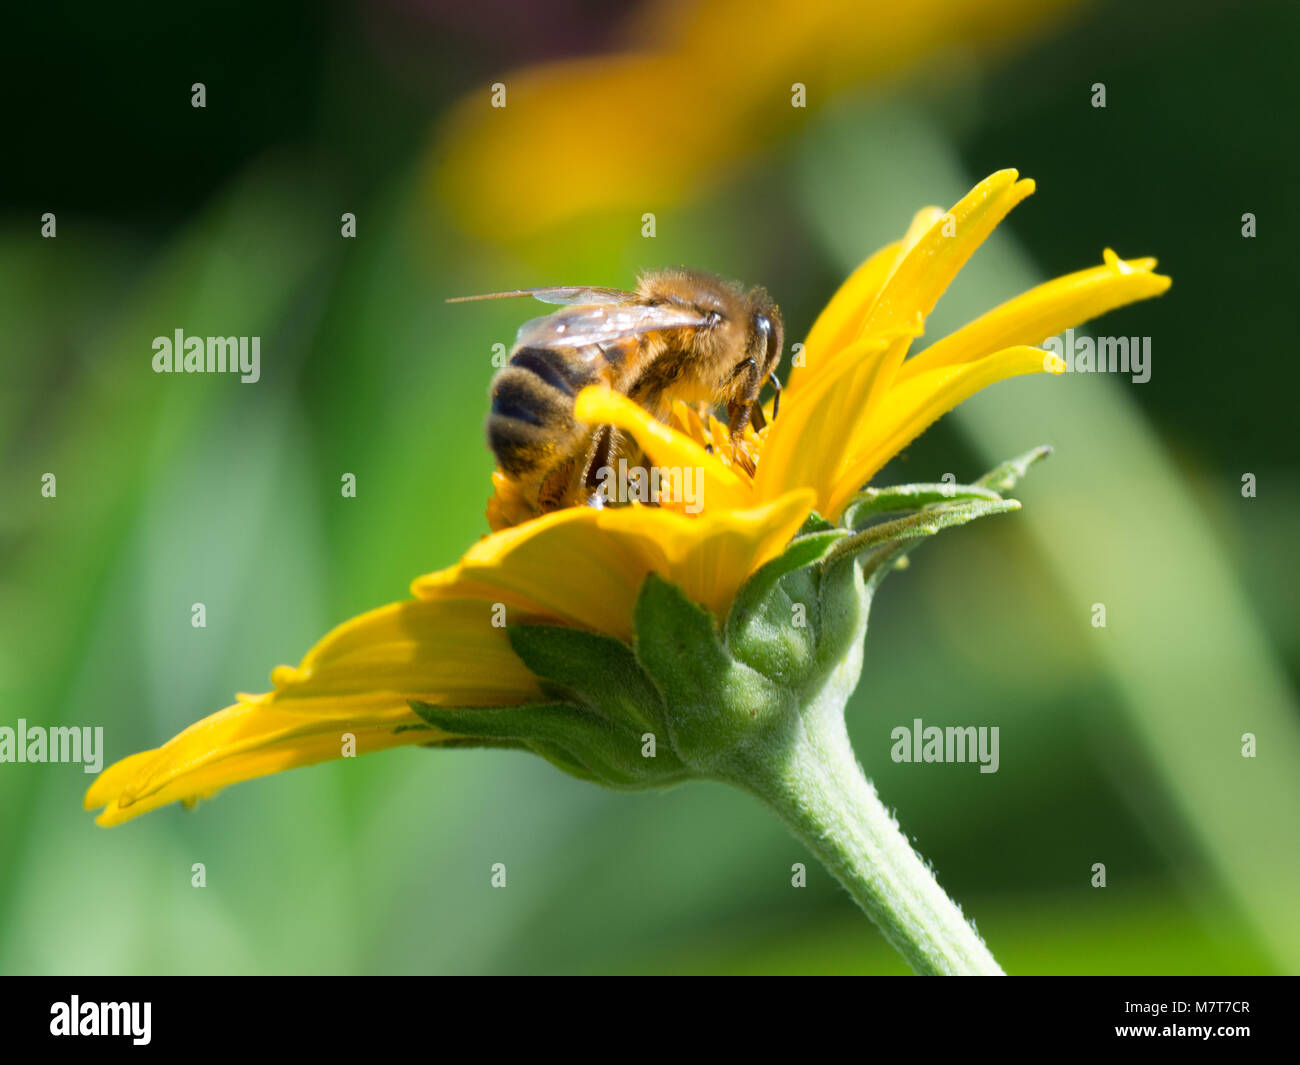 close up of honey bee collecting nectar from a yellow plant - Stock Image